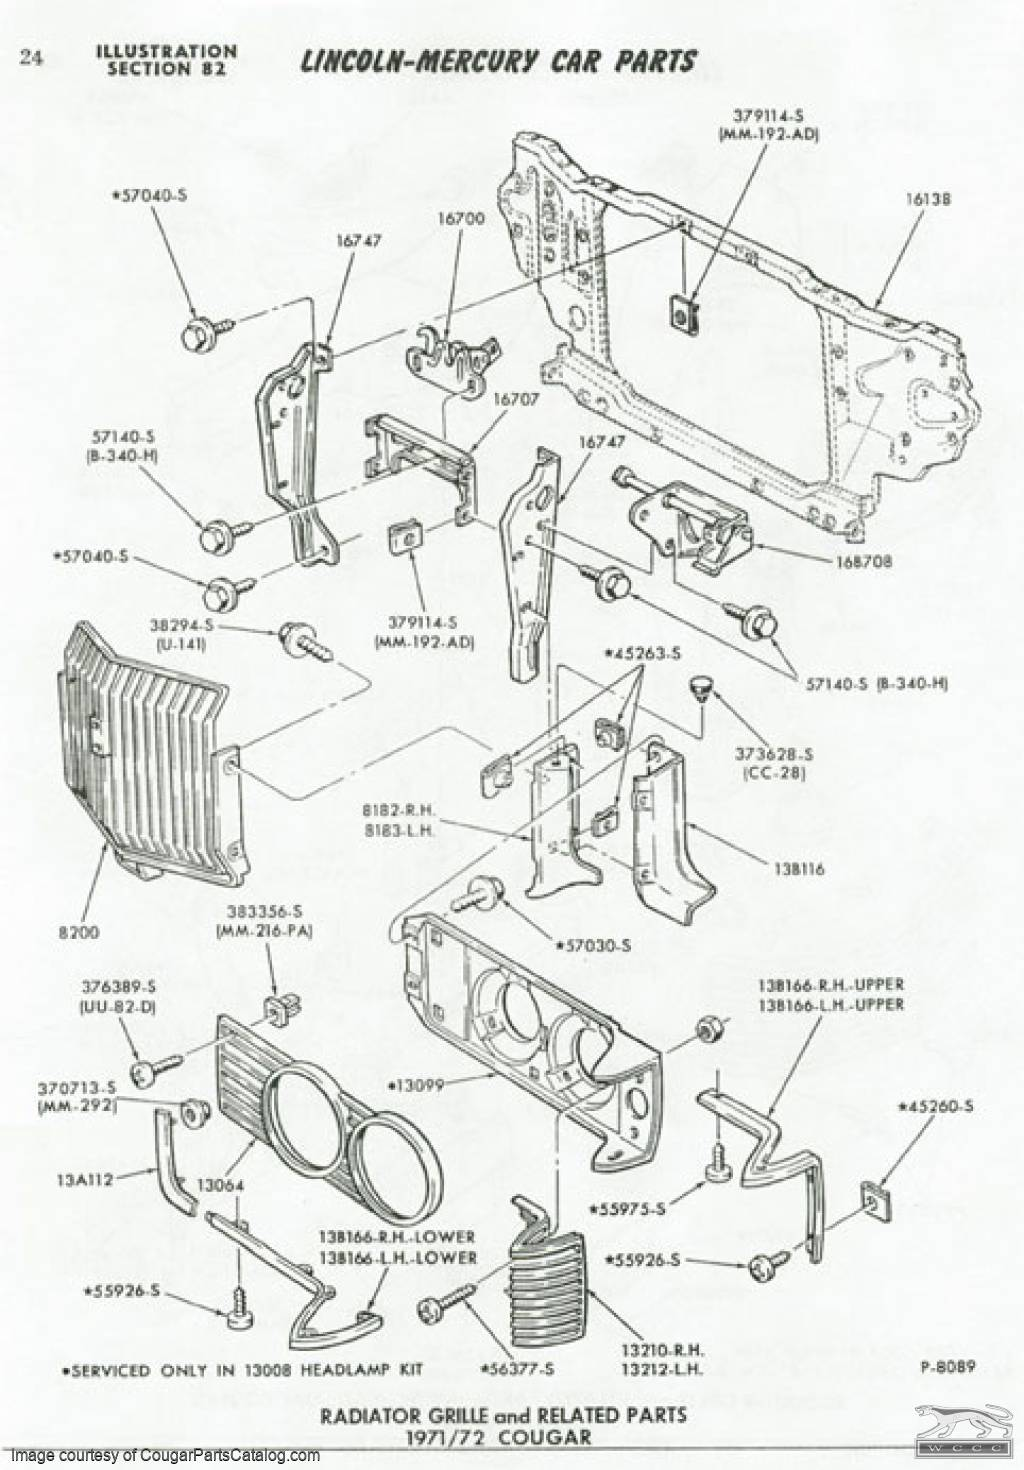 1968 Mustang Grille Diagram, 1968, Free Engine Image For